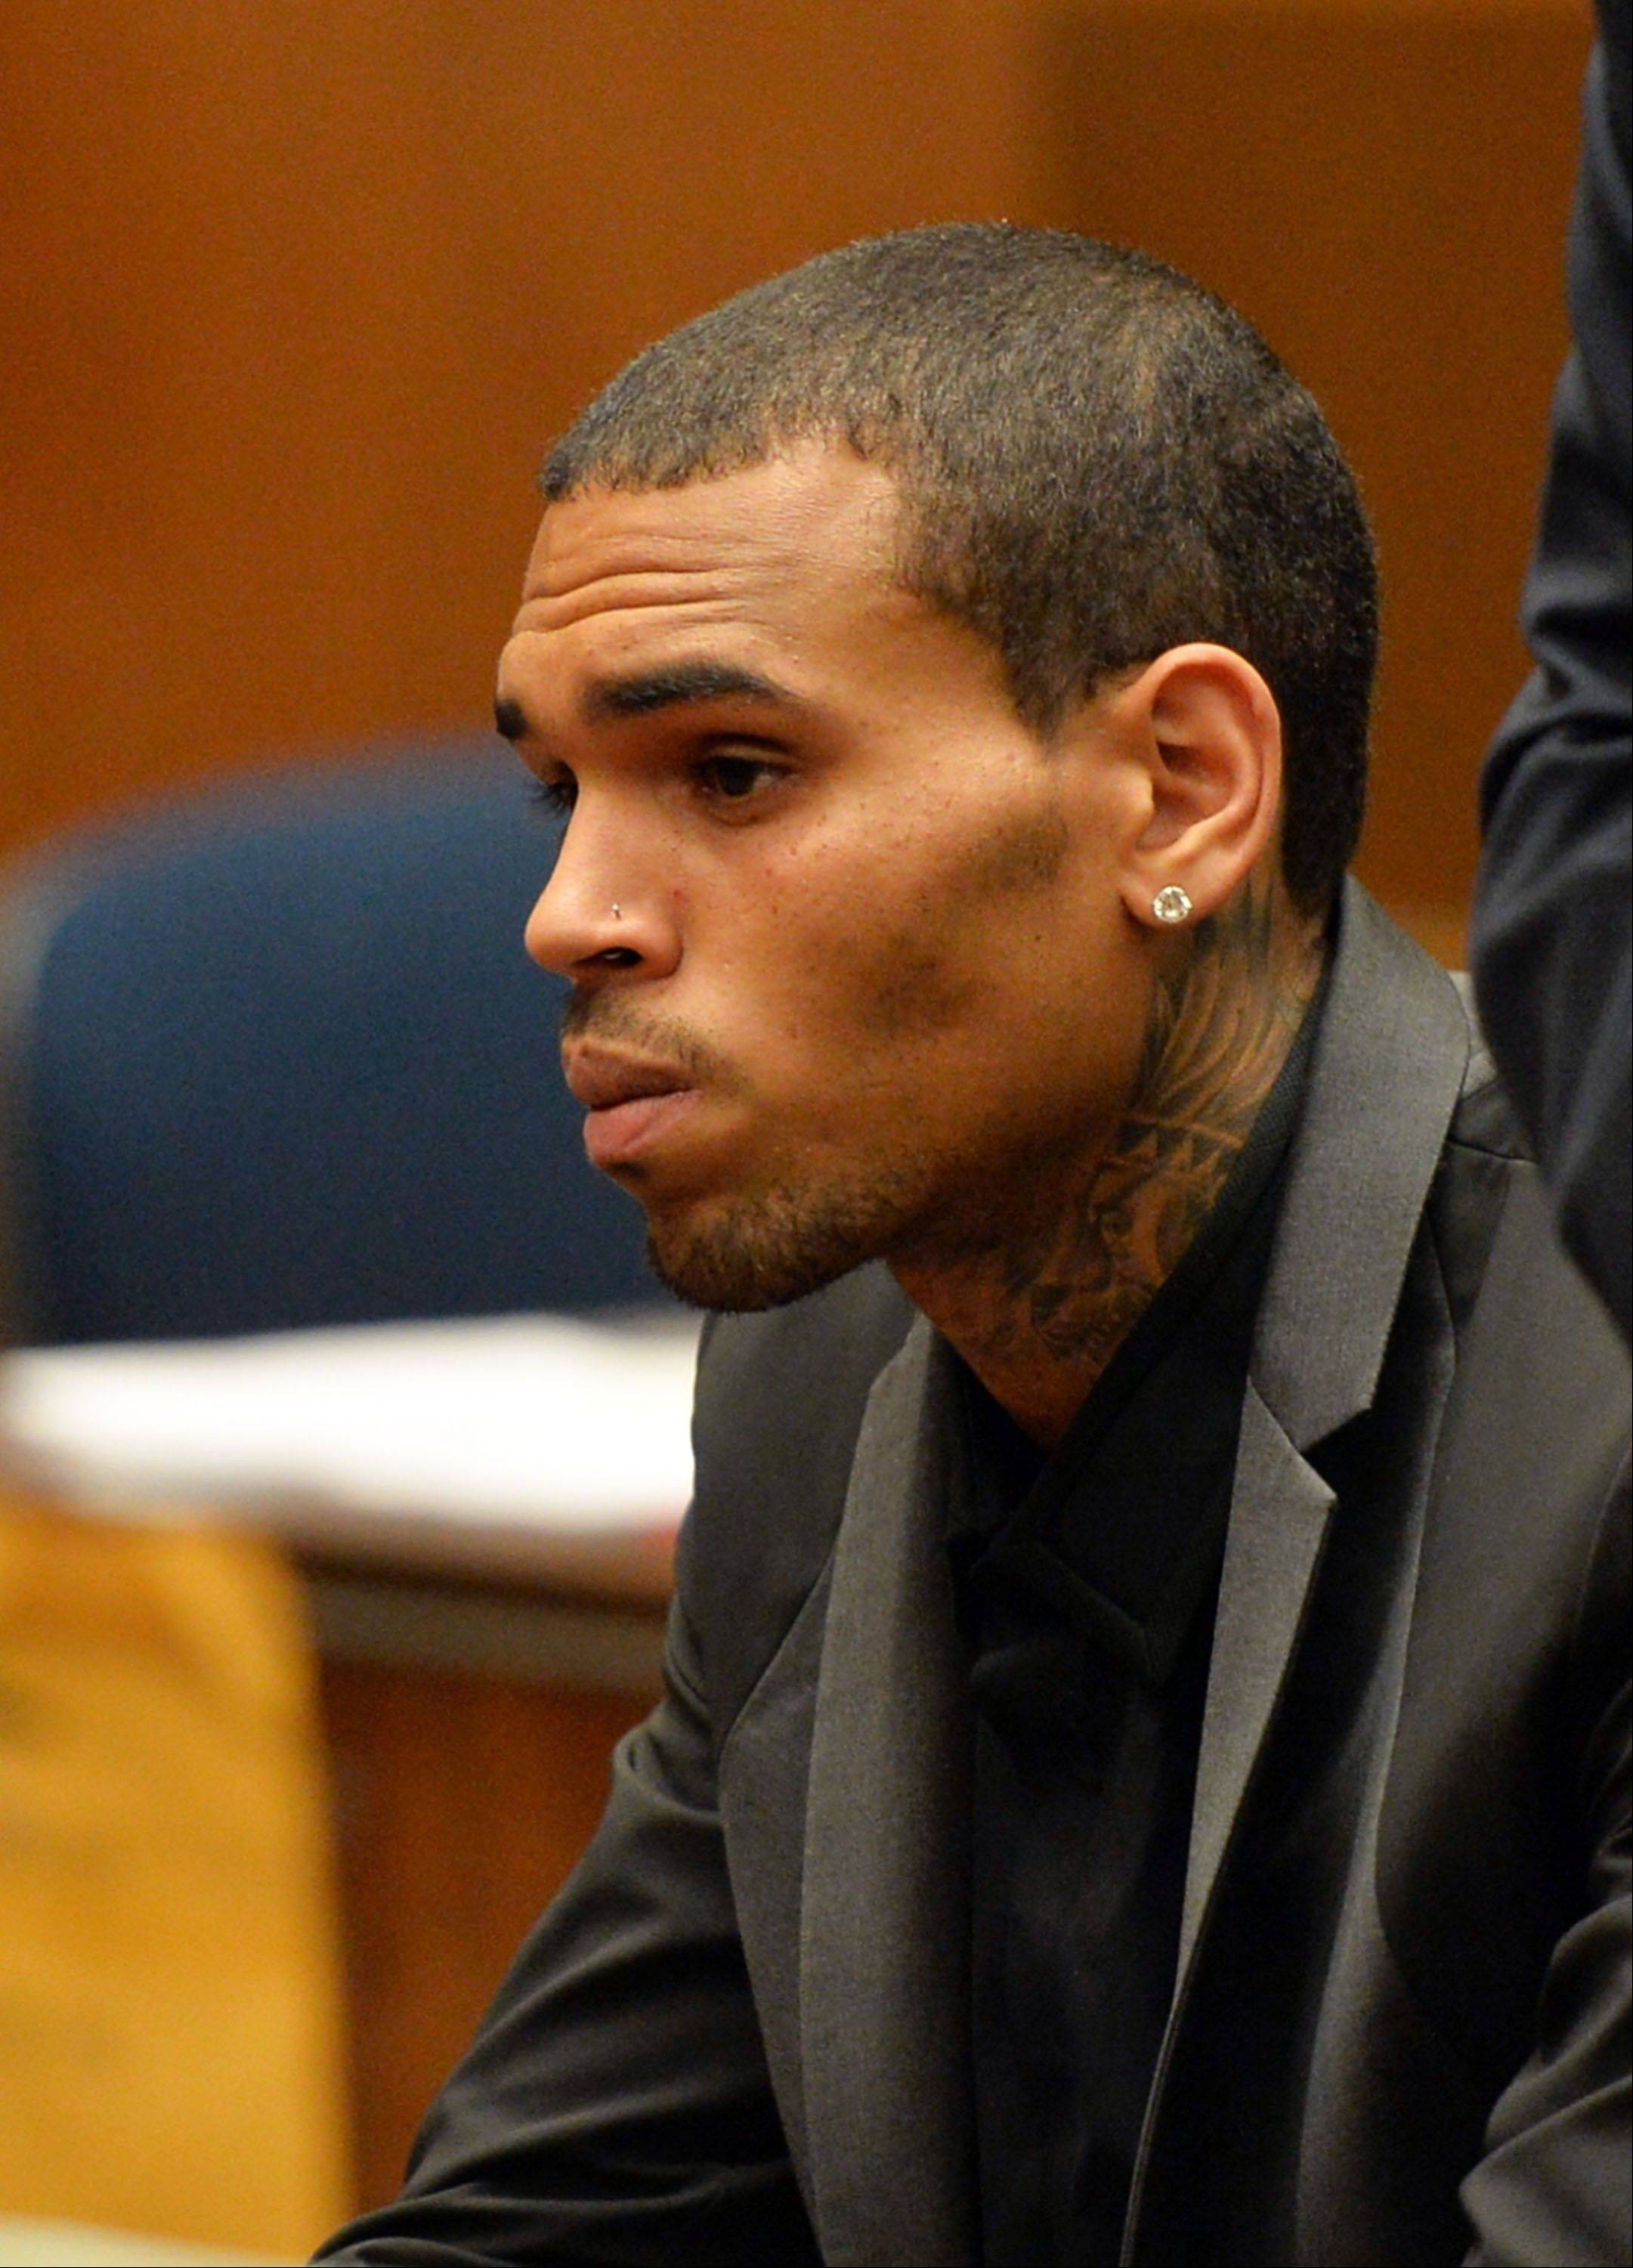 R&B singer Chris Brown appears during a court hearing at Los Angeles Superior Court Monday. A Los Angeles judge has revoked Brown's probation after reading details of an alleged hit-and-run accident and his behavior afterward, but the singer was not ordered to jail.